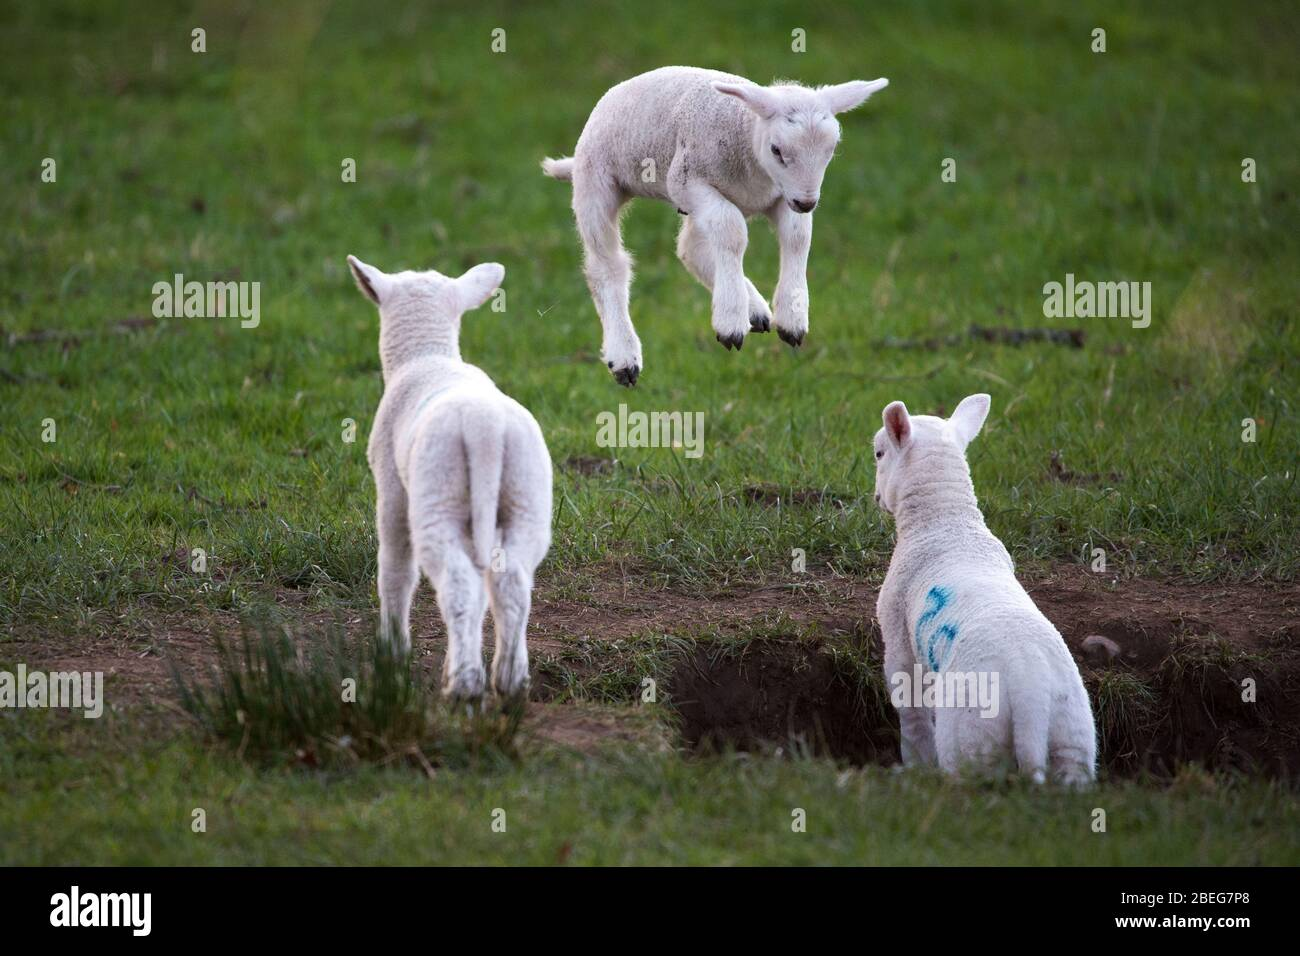 Doune, UK. 13th Apr, 2019. Pictured: Spring Lambs play in the late evening light on Bank Holiday Easter Monday. The Coronavirus (COVID-19) lockdown has been in place for almost 3 weeks allowing the expectant mother ewes to give birth in relative peace. The tiny lambs play and jump in the fields and suckle for milk from their mothers. Credit: Colin Fisher/Alamy Live News Stock Photo